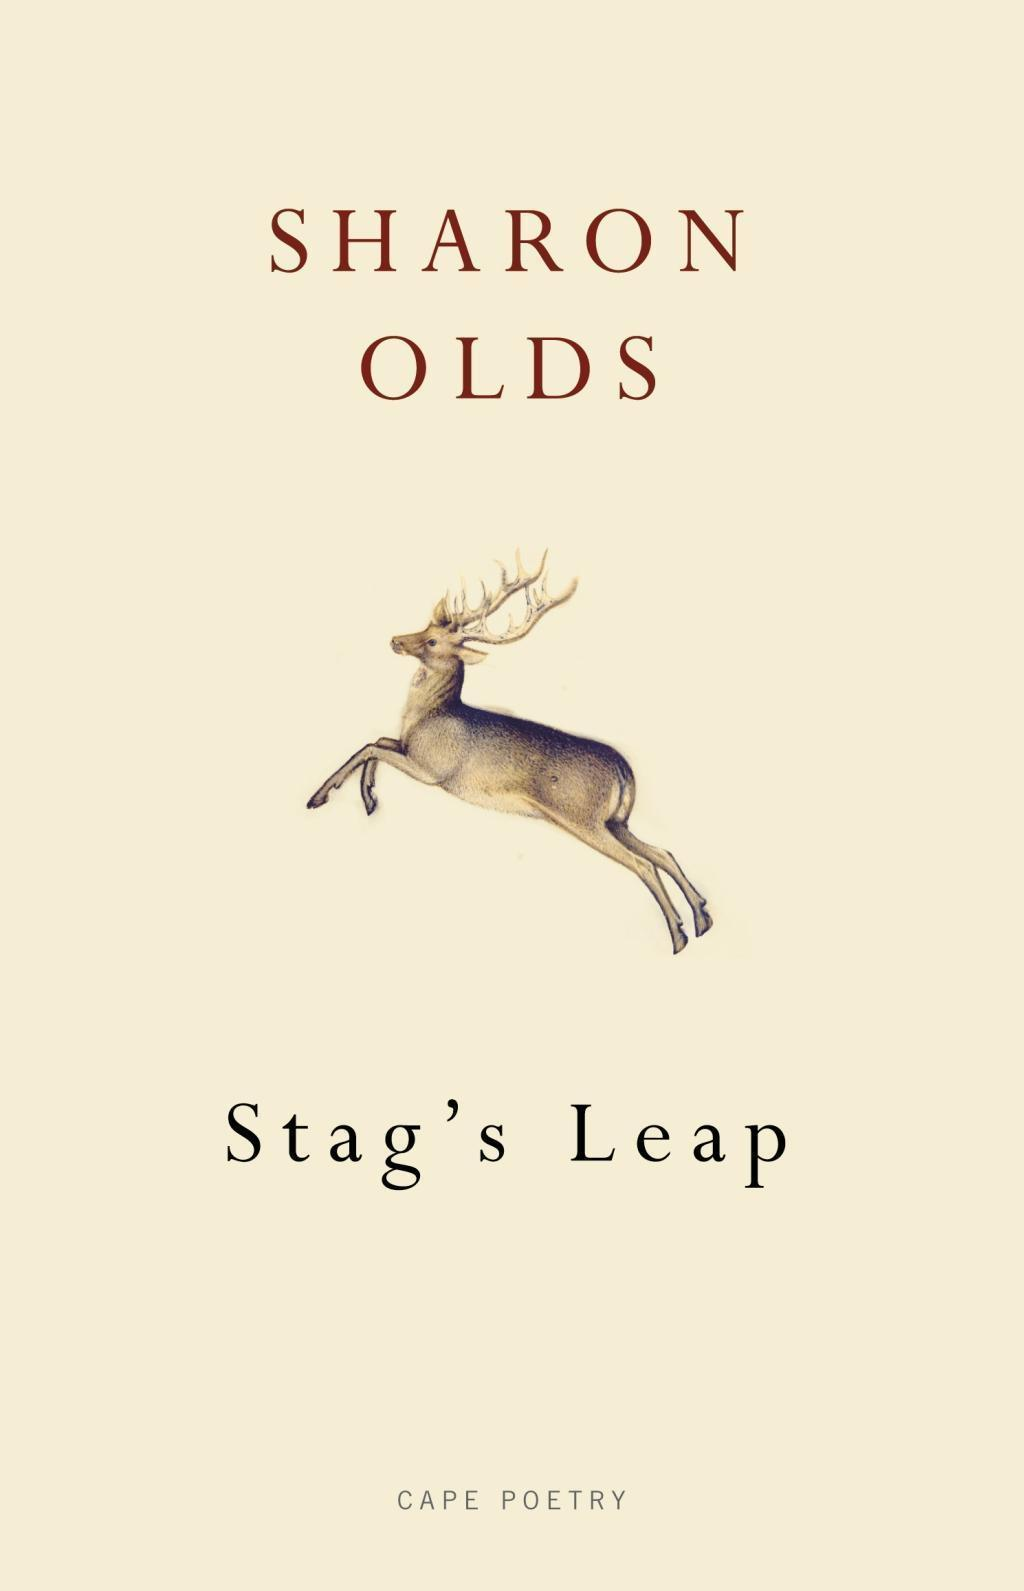 Stag's Leap